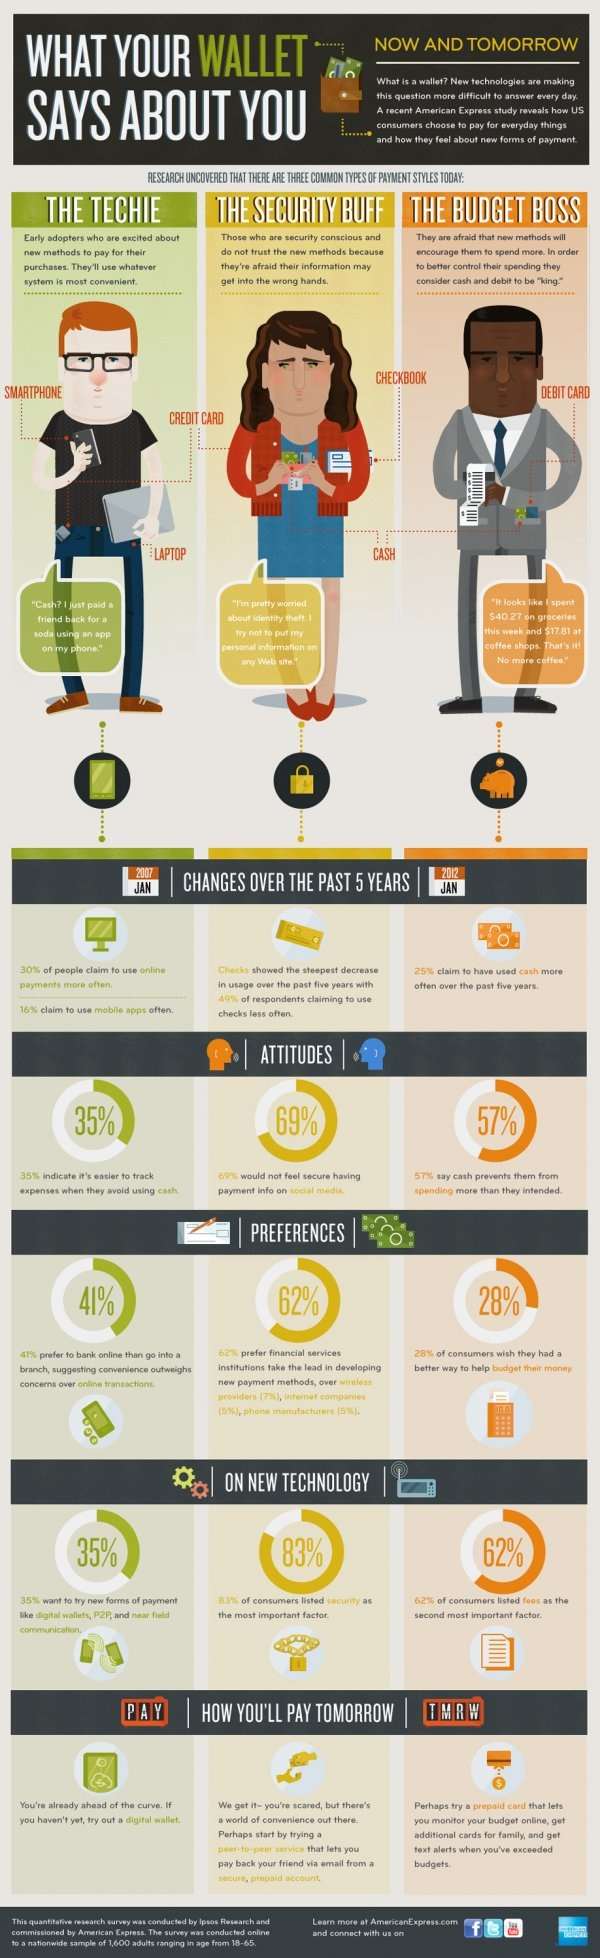 What Does Your Wallet Say About You? (Image: http://www.businessinsider.com/what-does-your-wallet-say-about-you-2012-4)